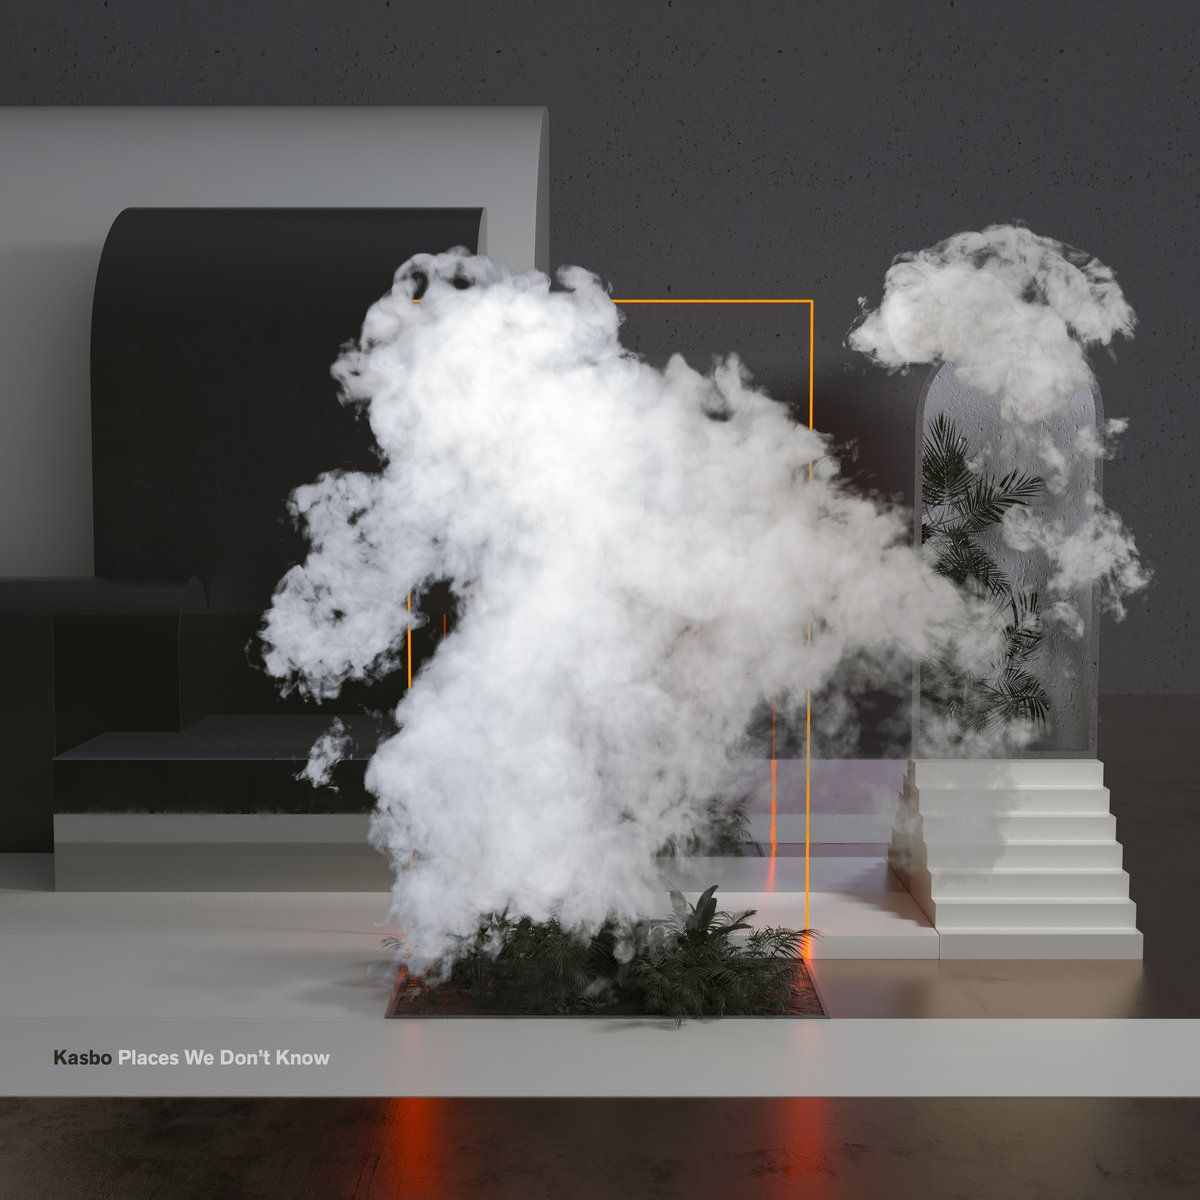 KASBO – Places We Don't Know